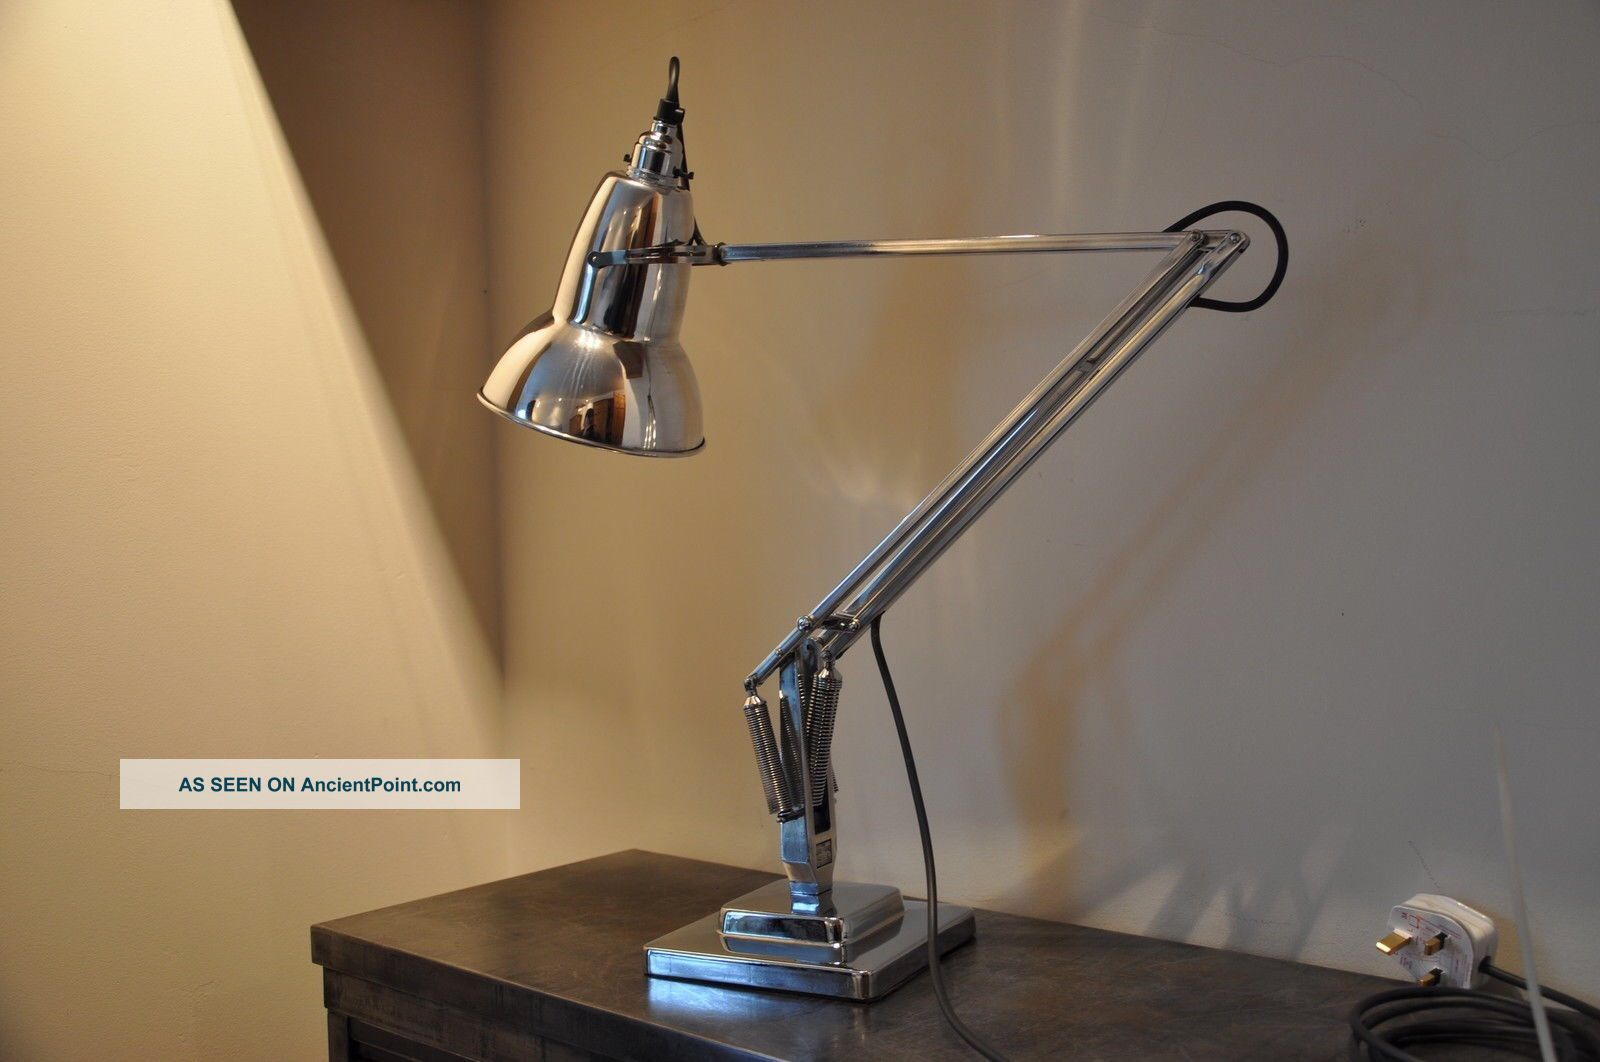 Anglepoise Lamp 1930 ' S Deco Retro English Design Classic Early Rimmed Shade 20th Century photo